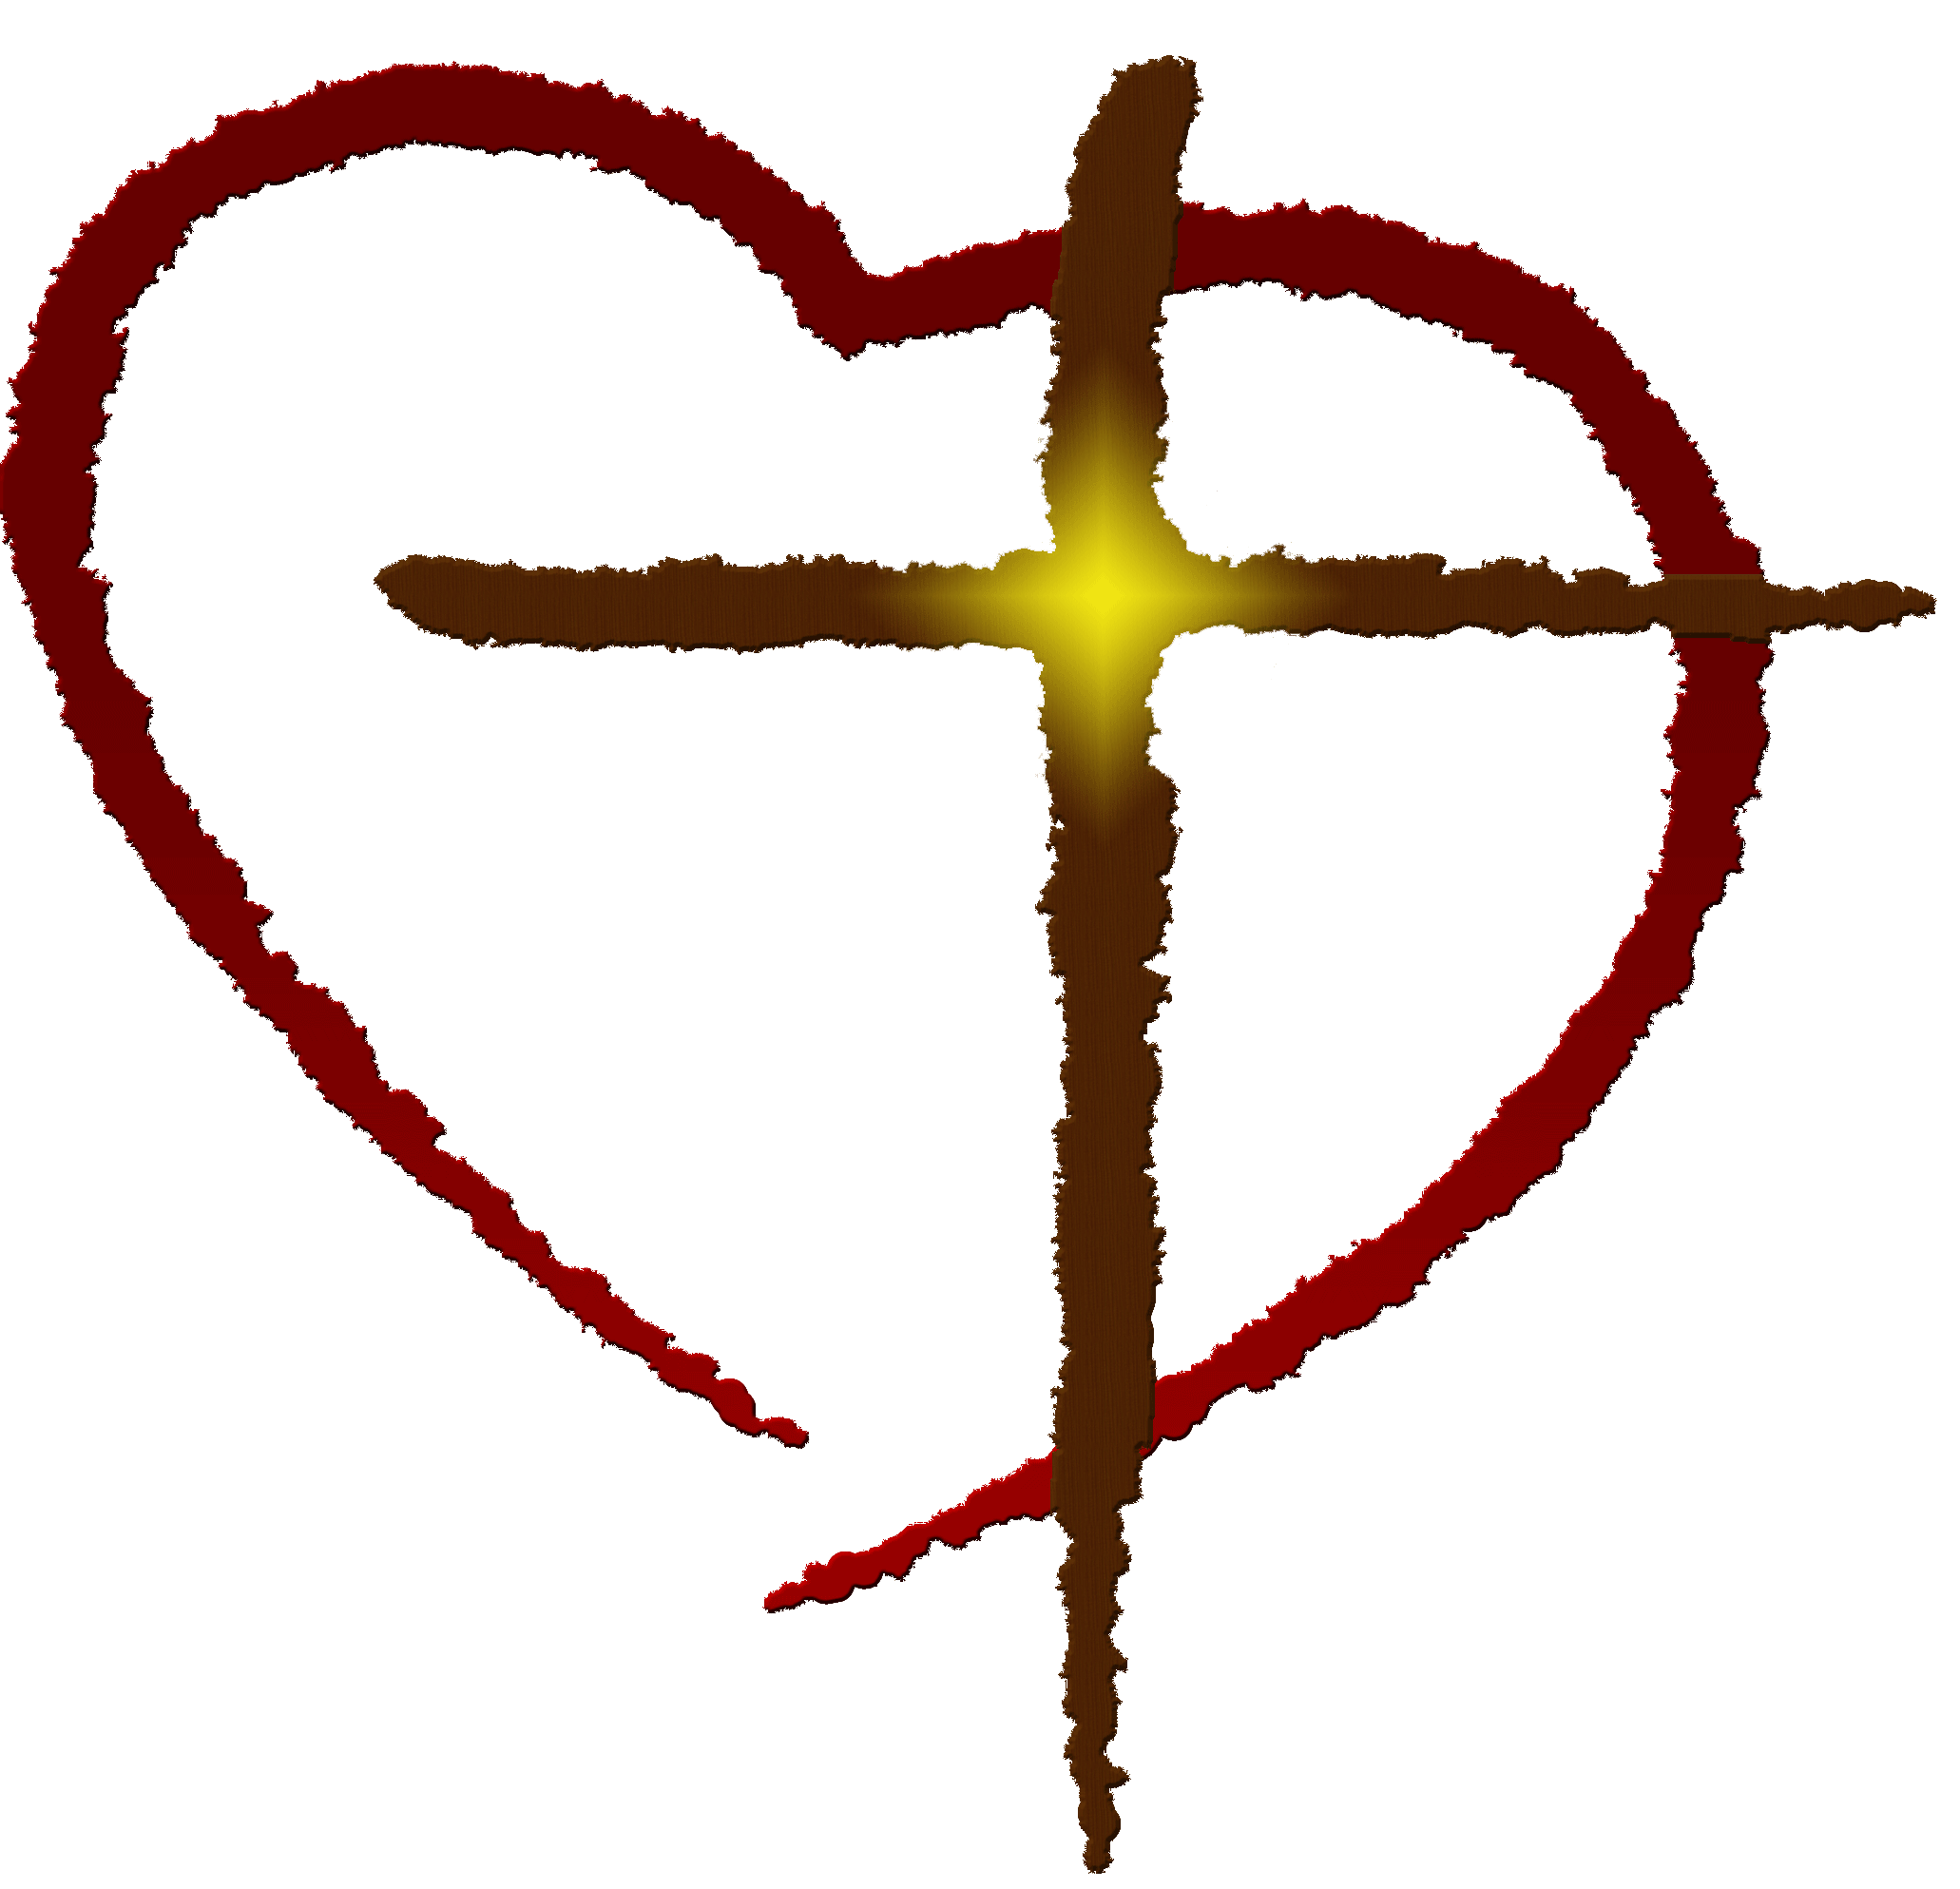 Christian Family Matters The Fact That Our Heart Yearns